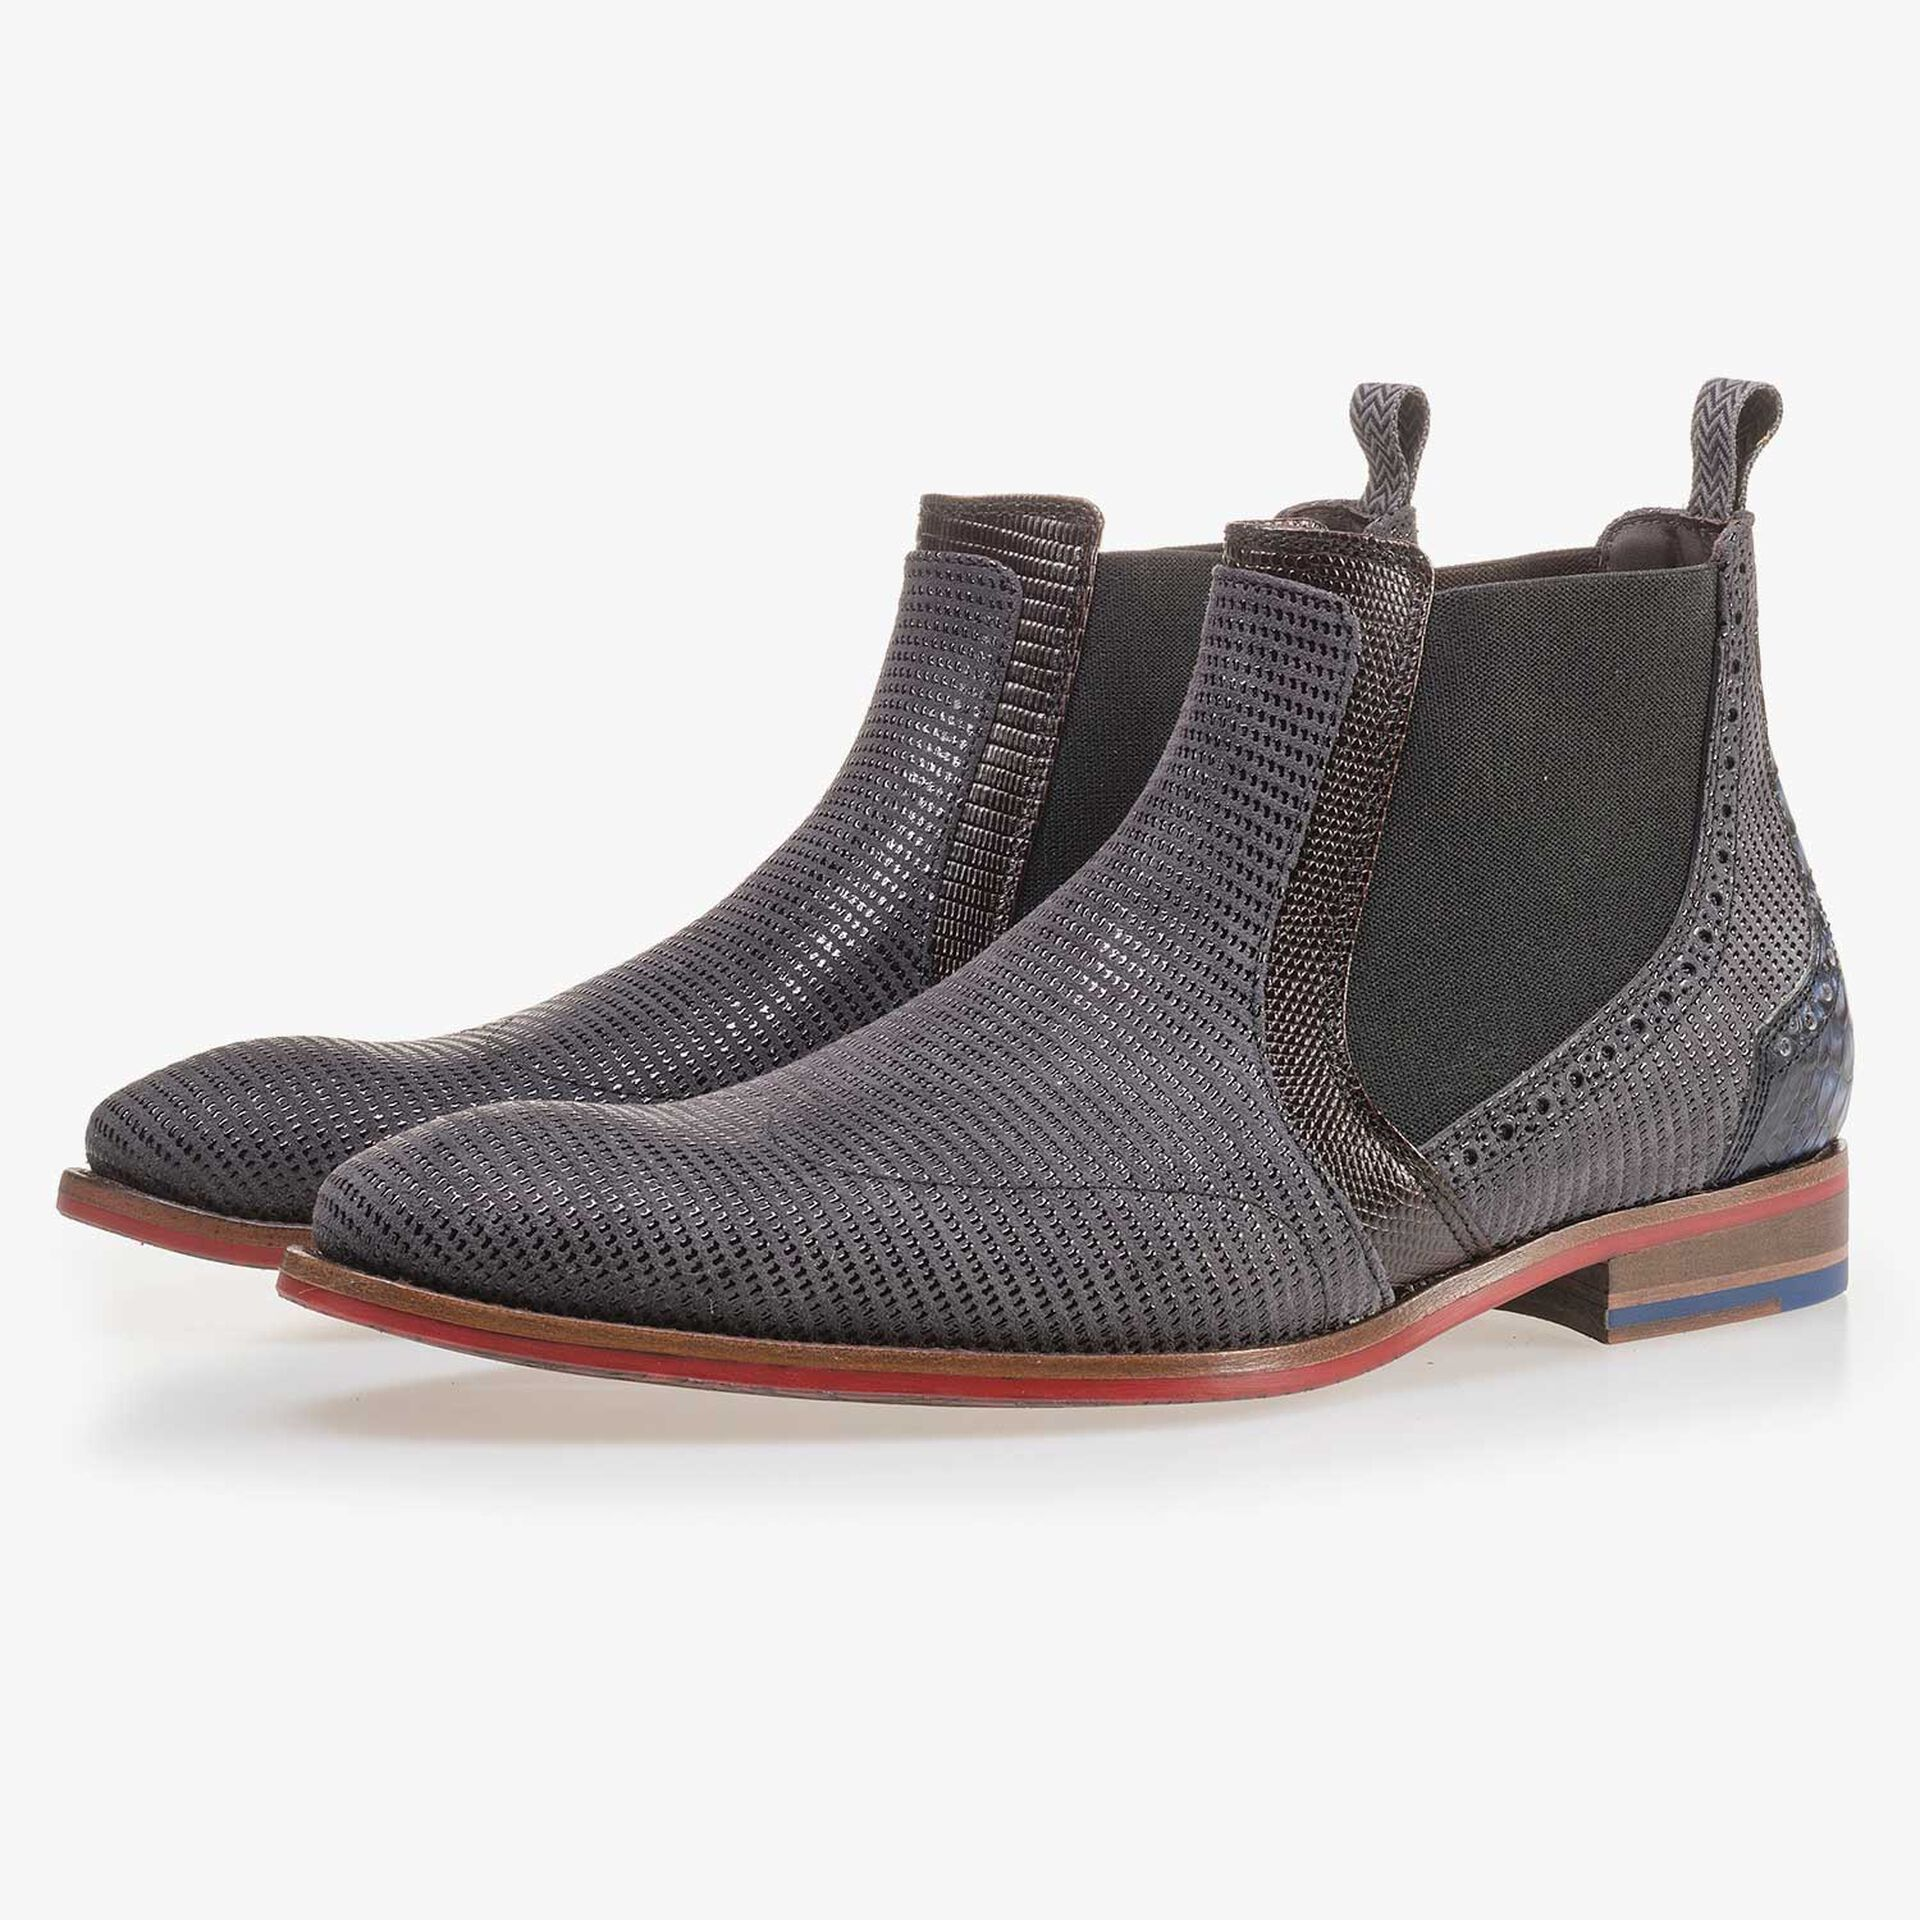 Dark grey suede leather Chelsea boot